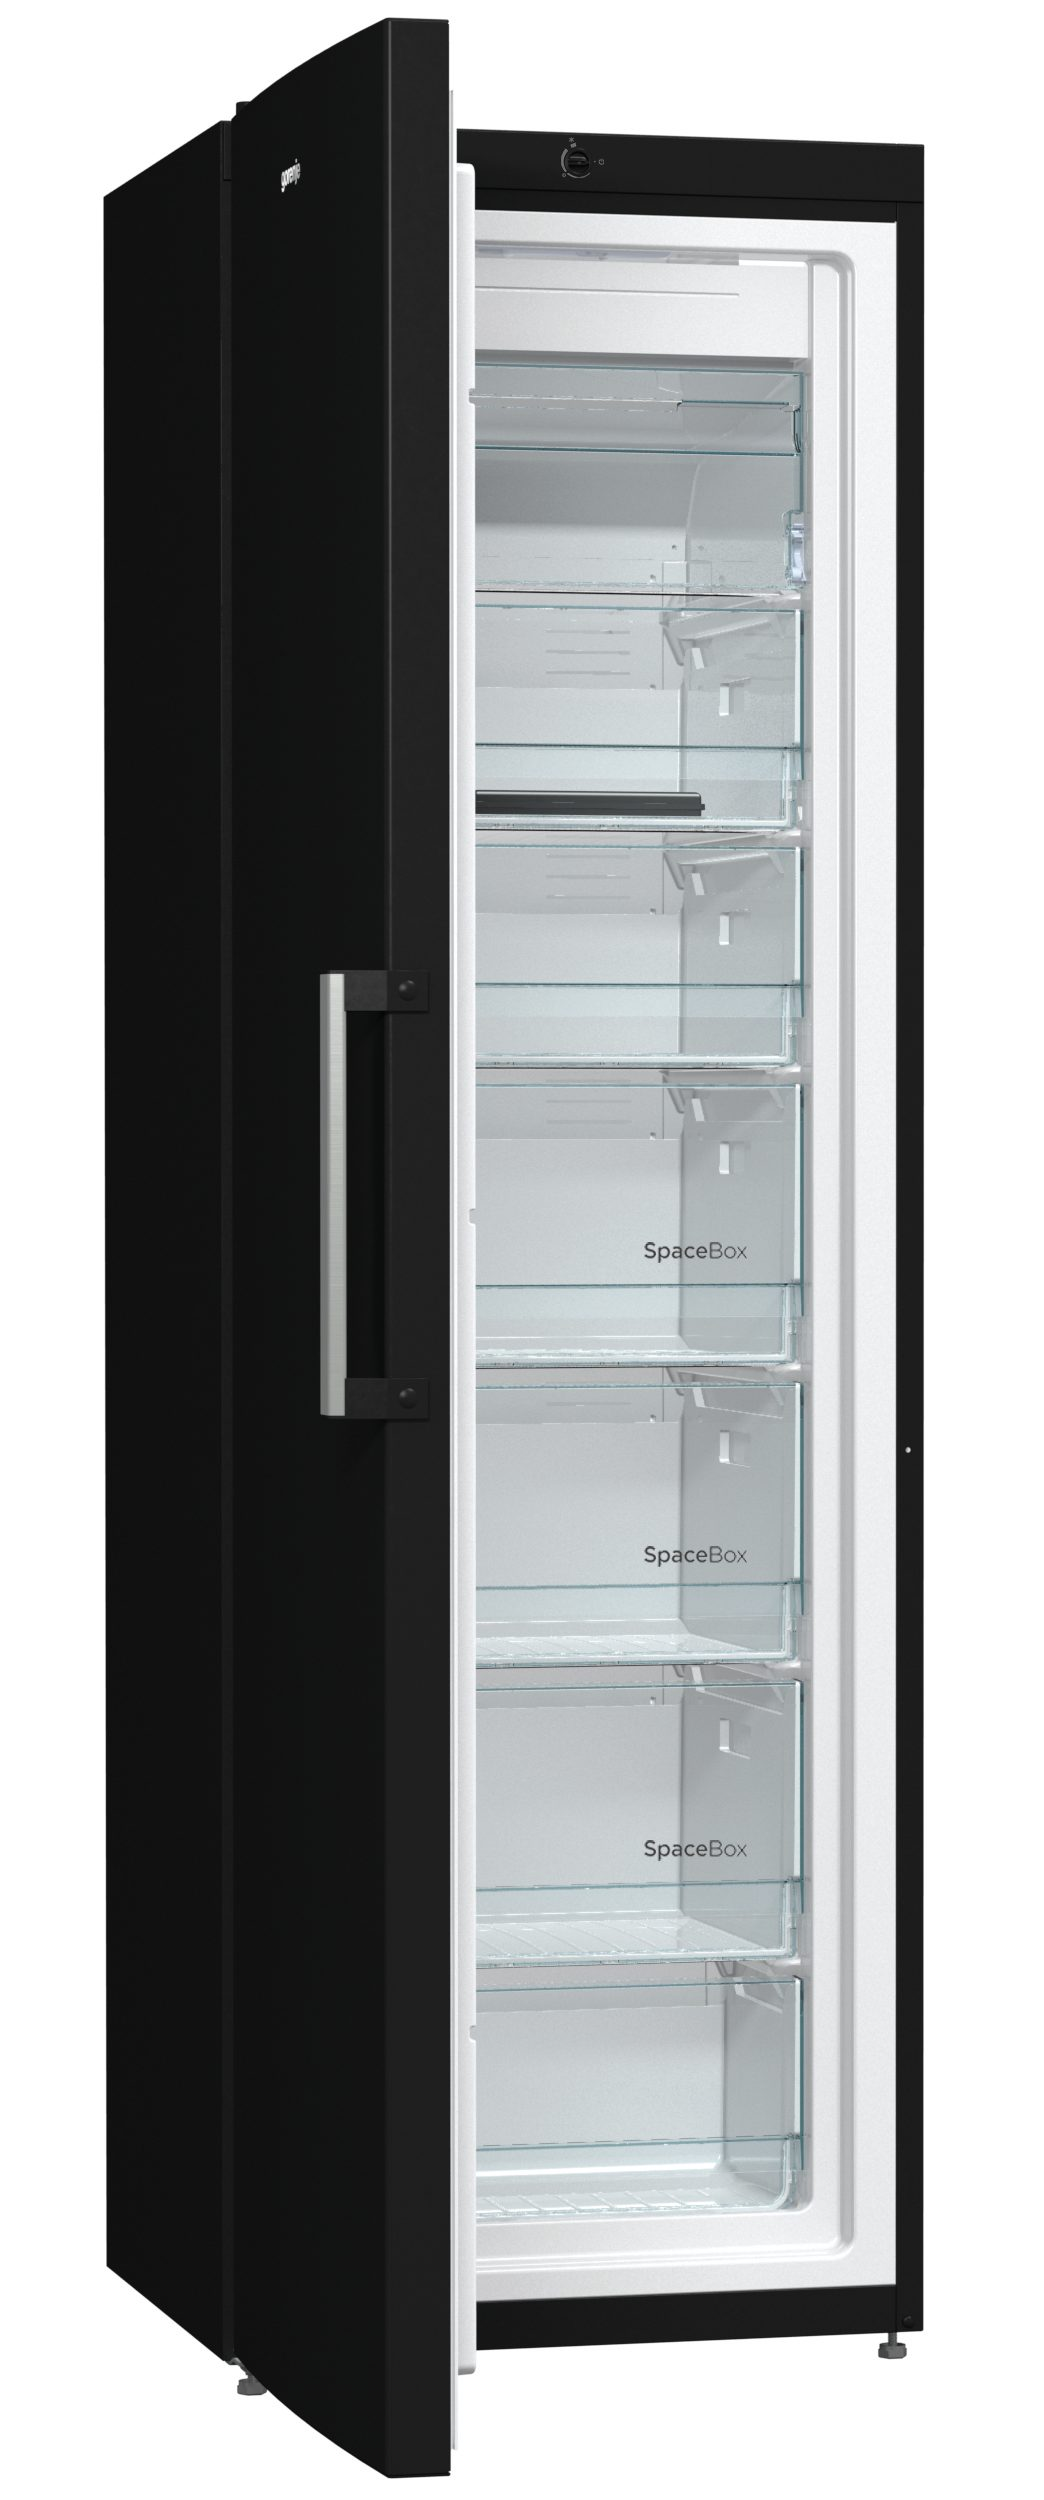 gefrierschrank fn6192cbk l gorenje. Black Bedroom Furniture Sets. Home Design Ideas